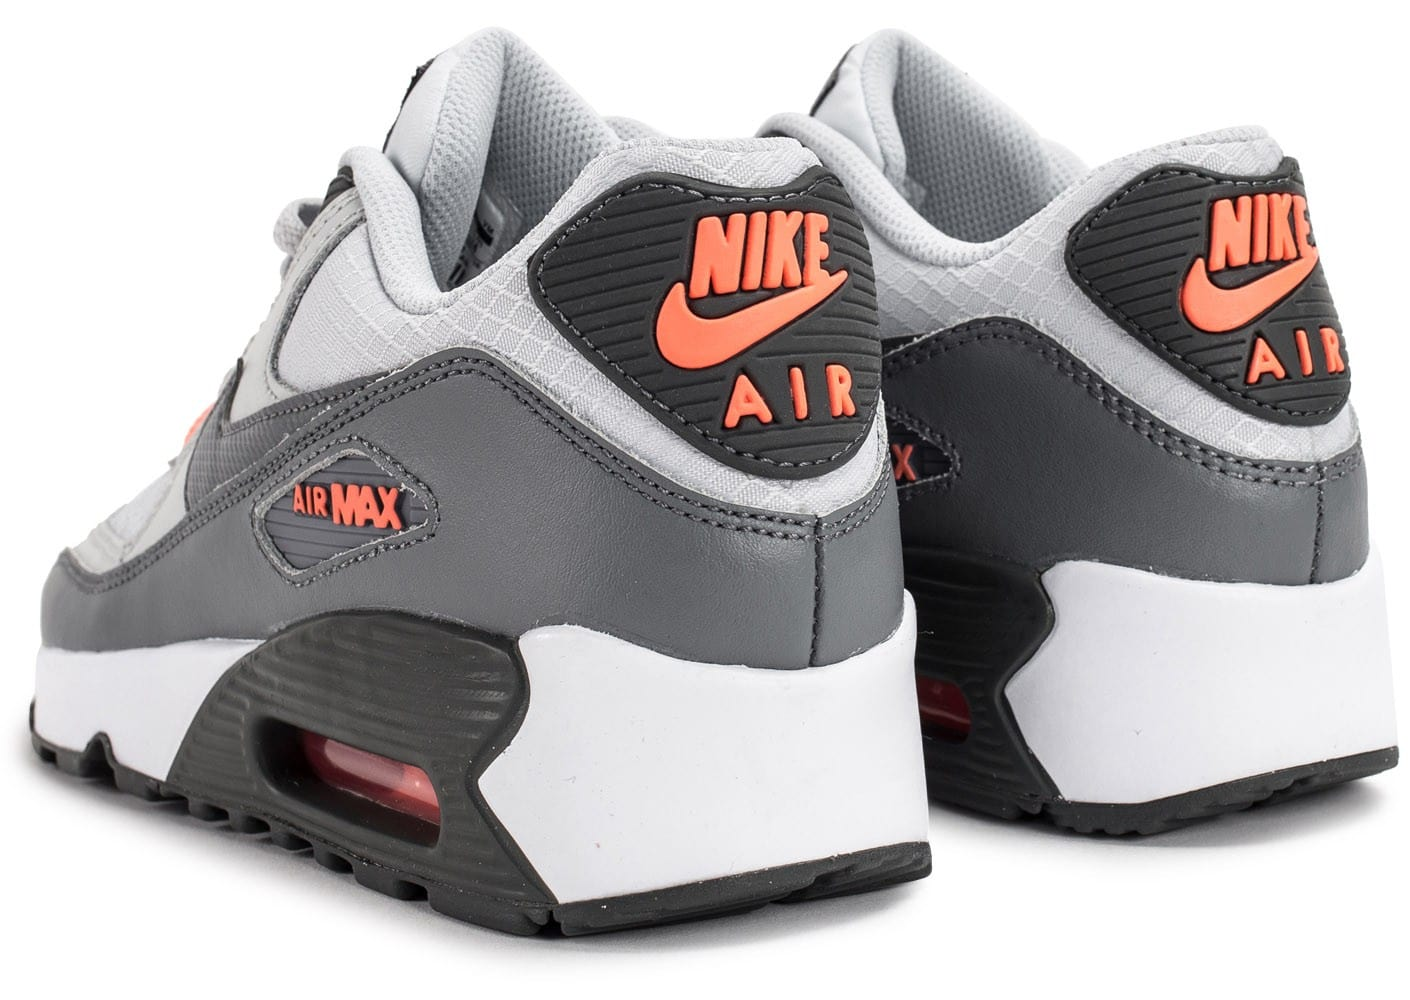 outlet store ad8bb ff21c ... Chaussures Nike Air Max 90 Mesh Junior grise et orange vue dessous ...